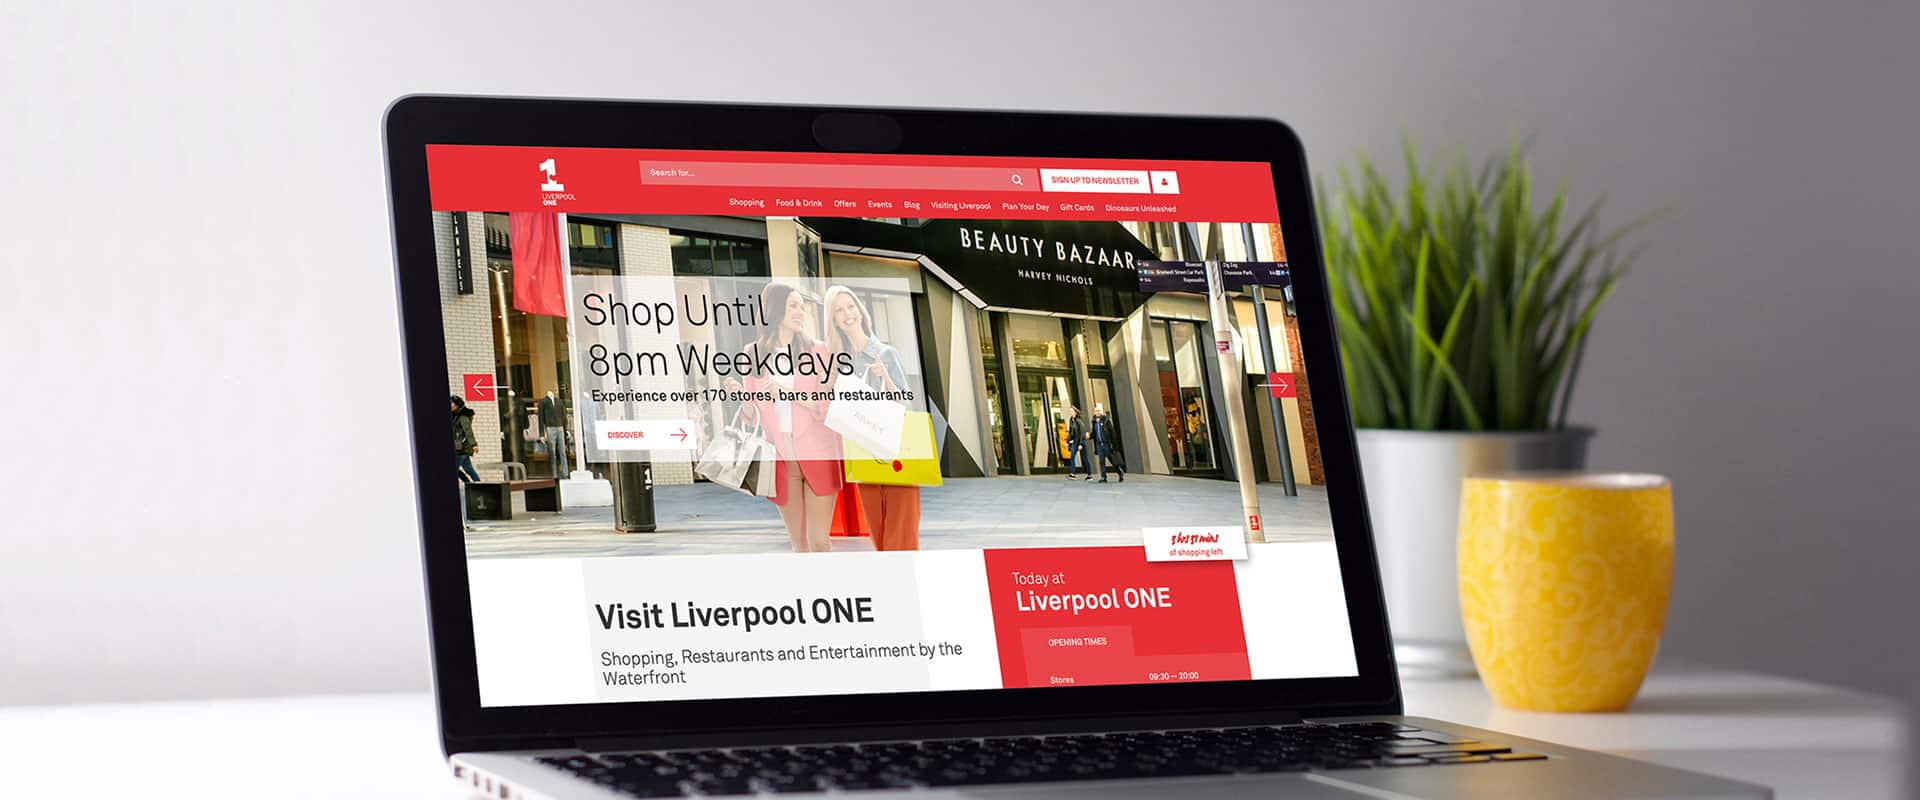 Liverpool ONE website on laptop